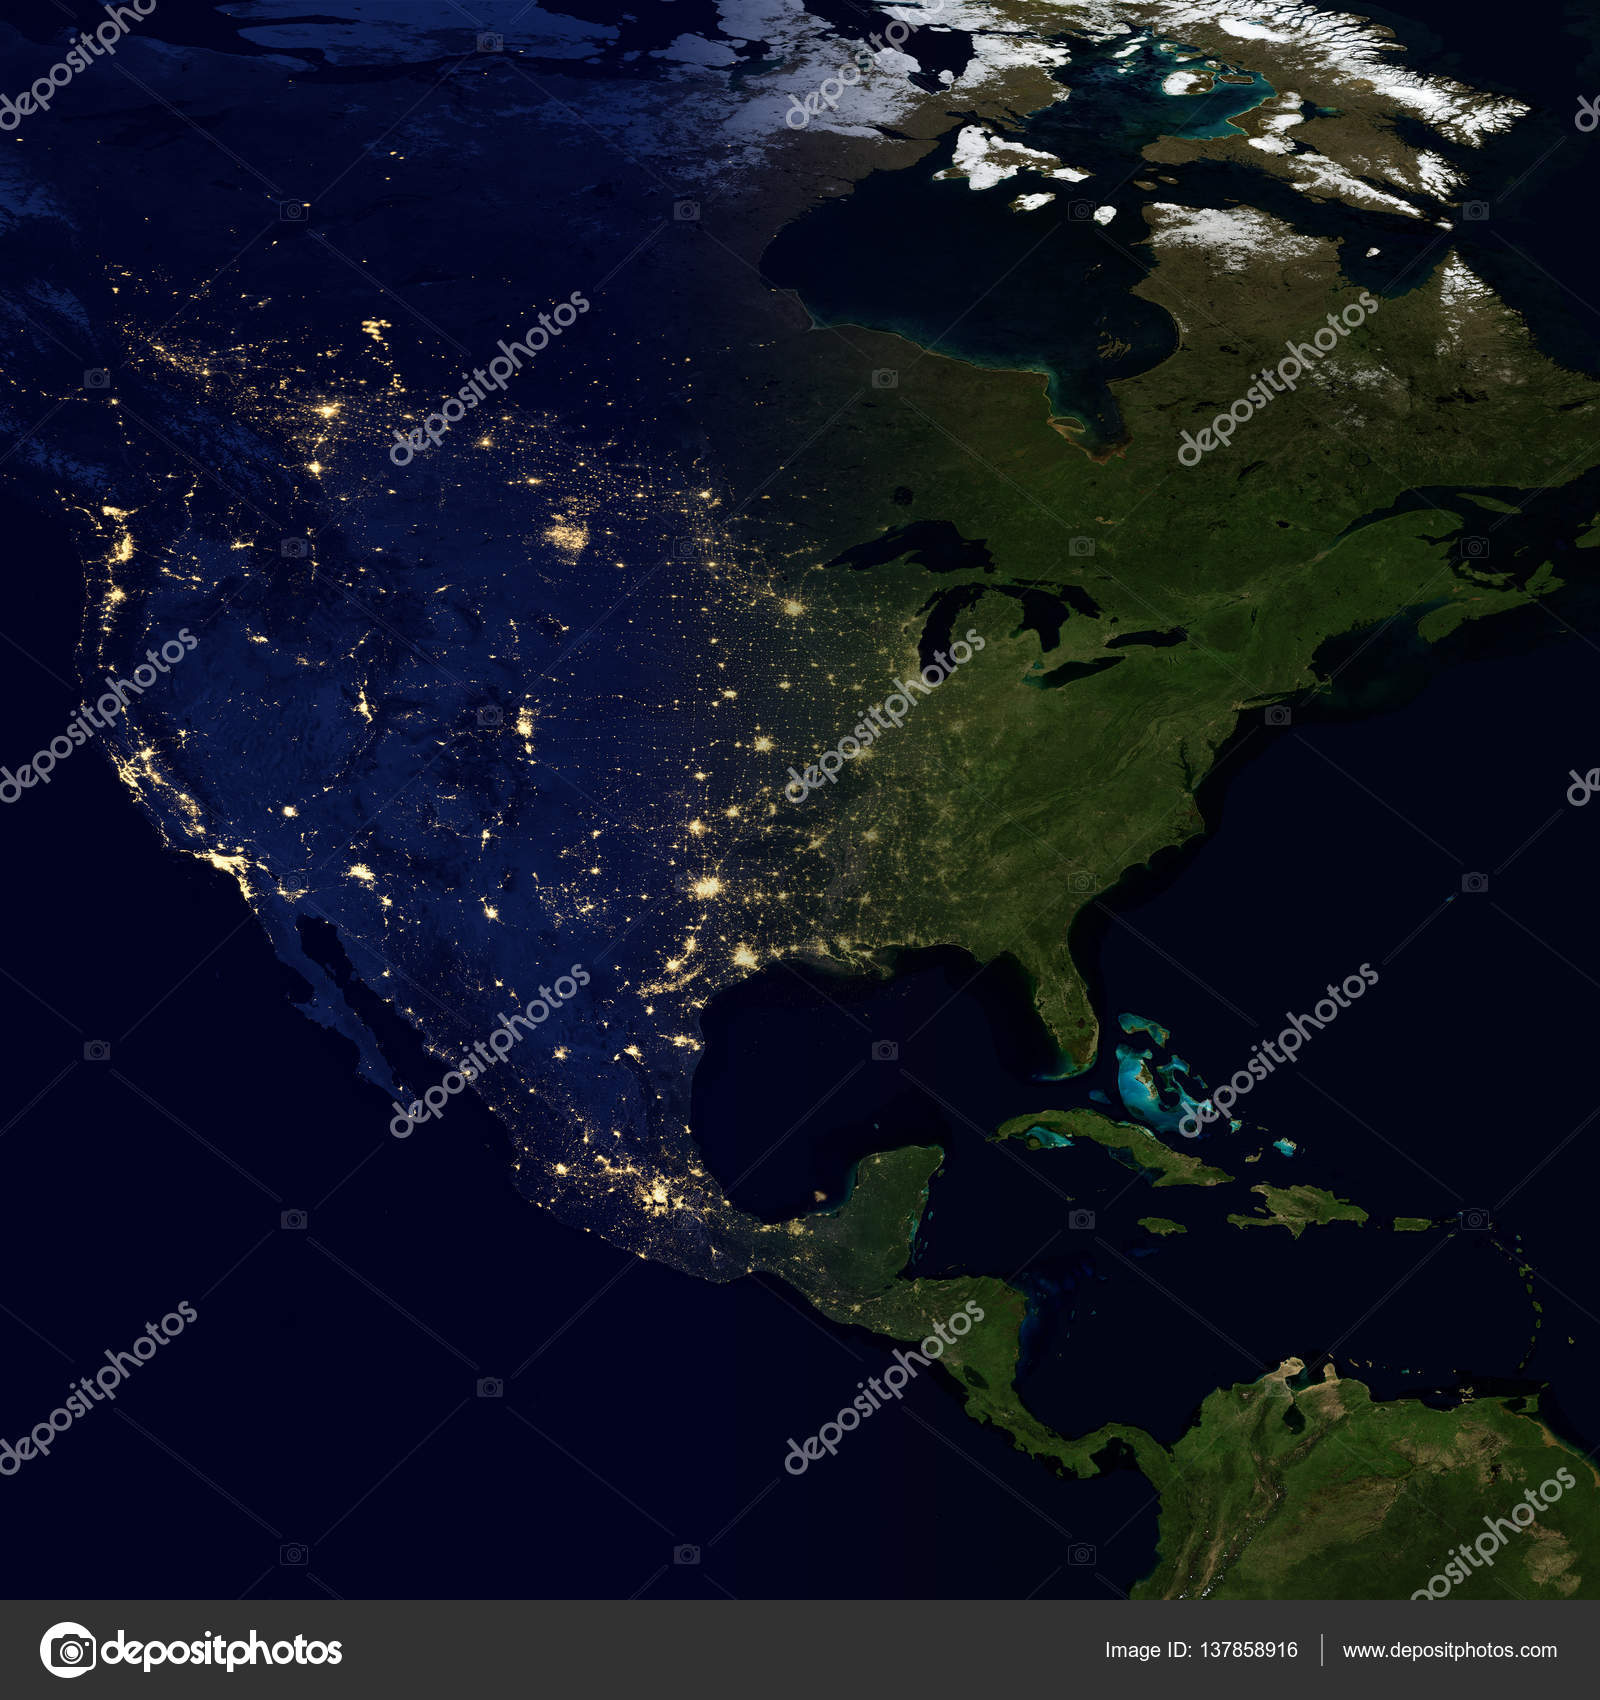 City lights on world map north america stock photo nasaage city lights on world map north america elements of this image are furnished by nasa photo by nasaage gumiabroncs Gallery